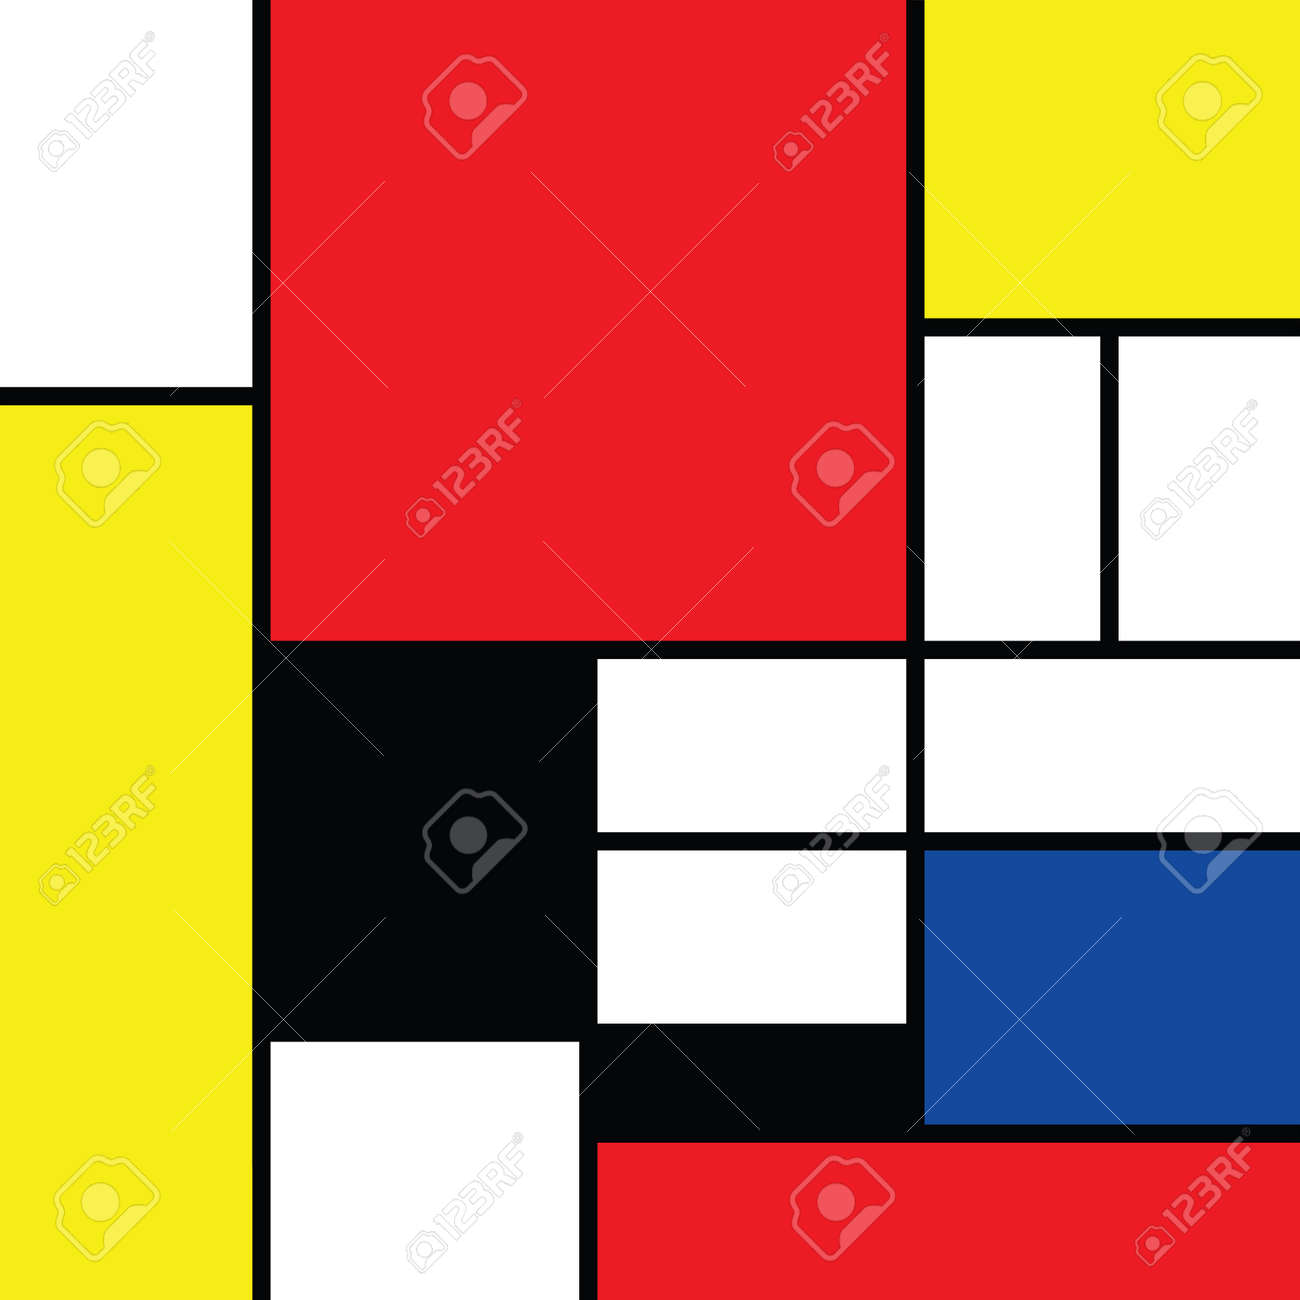 Checkered style emulation. The Netherlands art history and Holland painter. Dutch mosaic or checker line pattern. Retro pop art pattern - 156621199